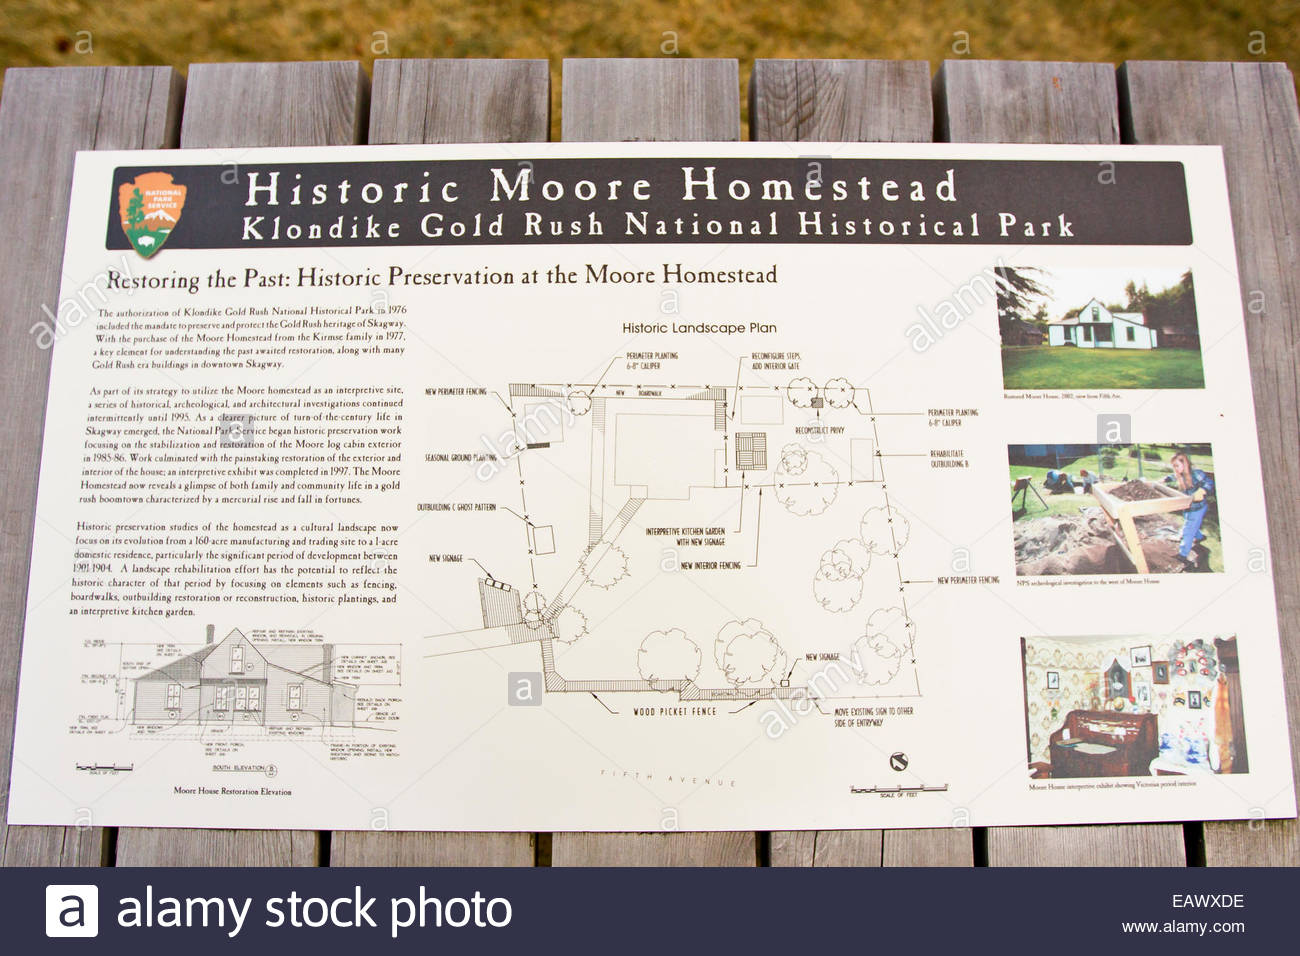 A sign and map of the historic Moore Homestead in Klondike Gold Rush National Park. - Stock Image